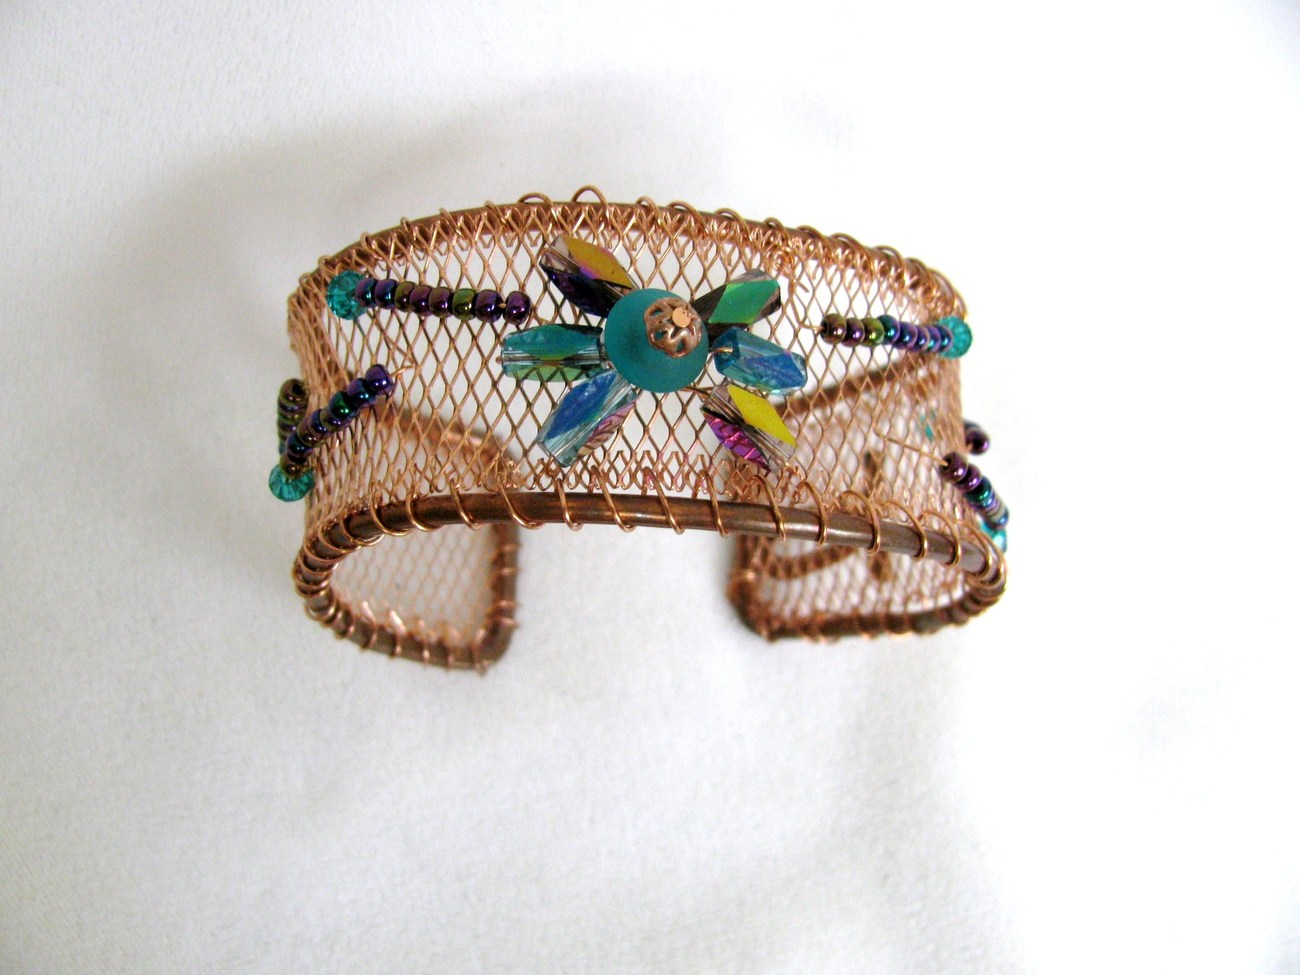 Copper Bracelet Cuff with Irridescent Turquoise and Purple G